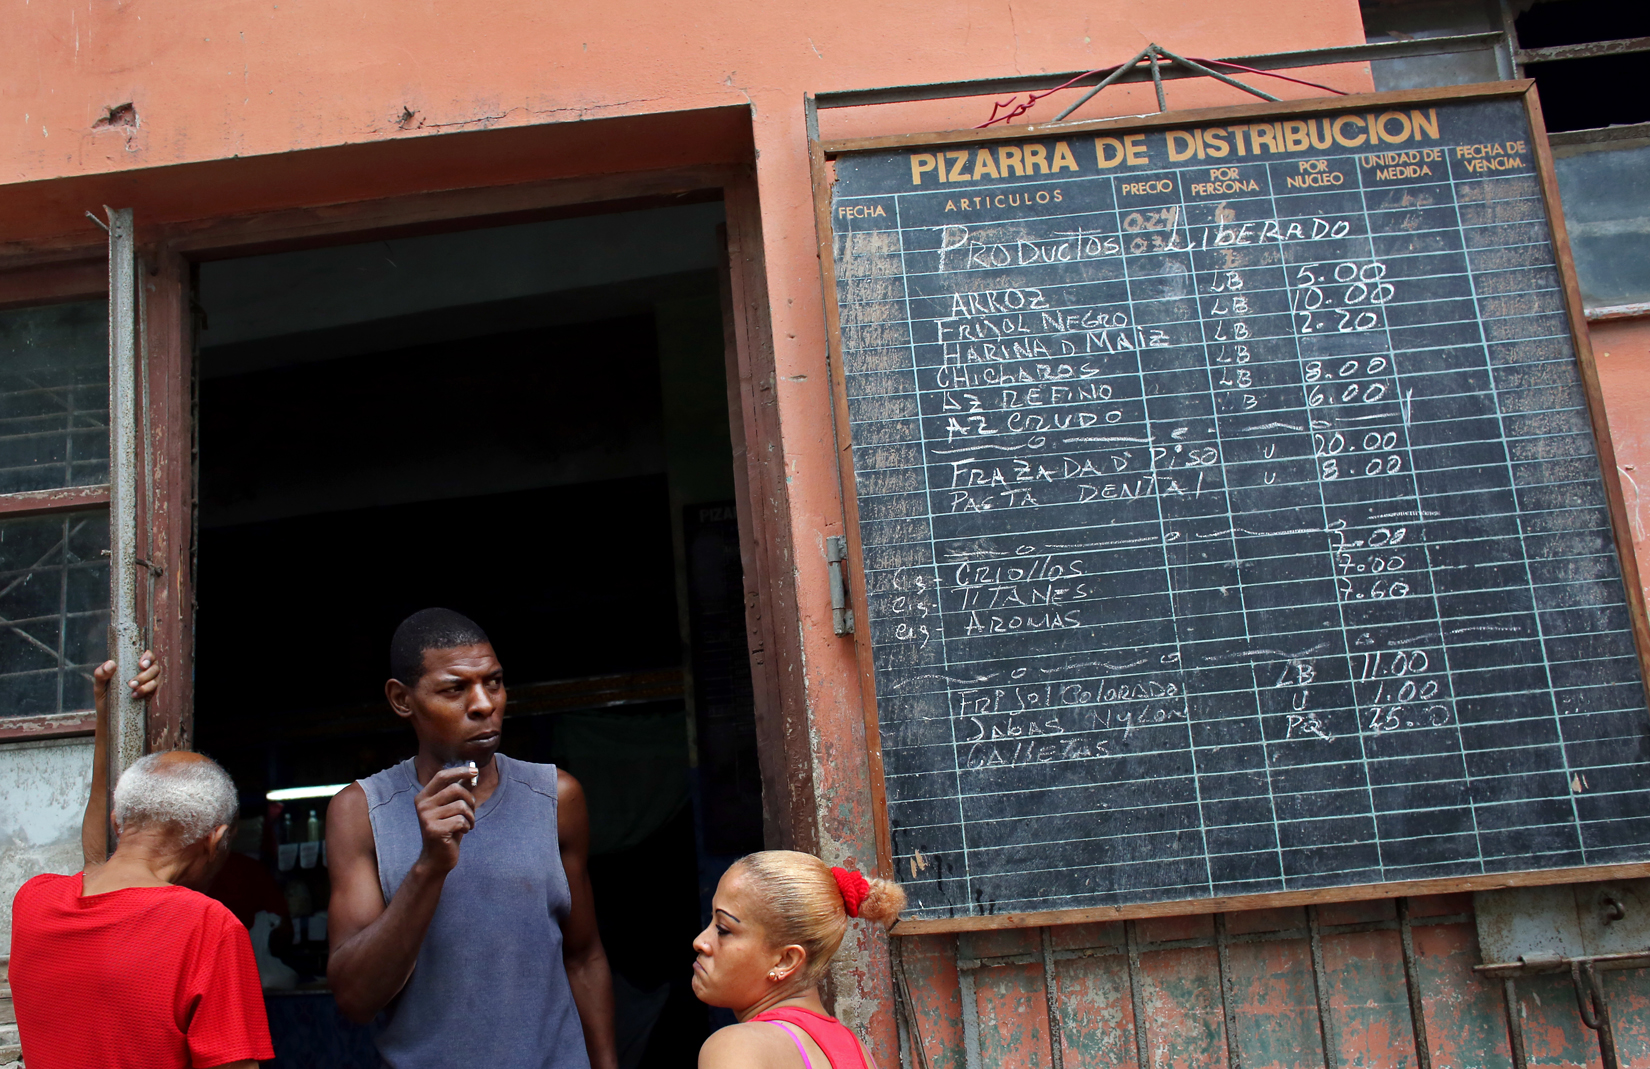 A list of available products hangs outside of a bodega (convenience store) in Havana, Cuba. Bodegas provide food rations - basics like rice, flour, sugar and beans, that exclude green veggies, most meat, spices or dairy (which is restricted to all but children and pregnant women) - to each Cuban citizen via the Libreta de Abastecimiento (supplies booklet,) which establishes the kind, amount and frequency of food allotted per person. The rations, which supply approximately 1/3 of Cubans' food requirements, have been kept at stable, subsidized prices since the program's inception in 1962 - as food can otherwise be forbiddingly expensive, and even at bodegas, hard to come by. This is due to a combination of inefficient farming policies, the U.S. embargo (in place since the 60s,) and the collapse of the Soviet Union in the 90s (which until then had filled the U.S.-Cuba trade vacuum with subsidies.) Food shortages, while common today, were especially sharp then, both in Bulgaria and Cuba, as the two countries tried to adjust to a non-Soviet-sponsored economy.